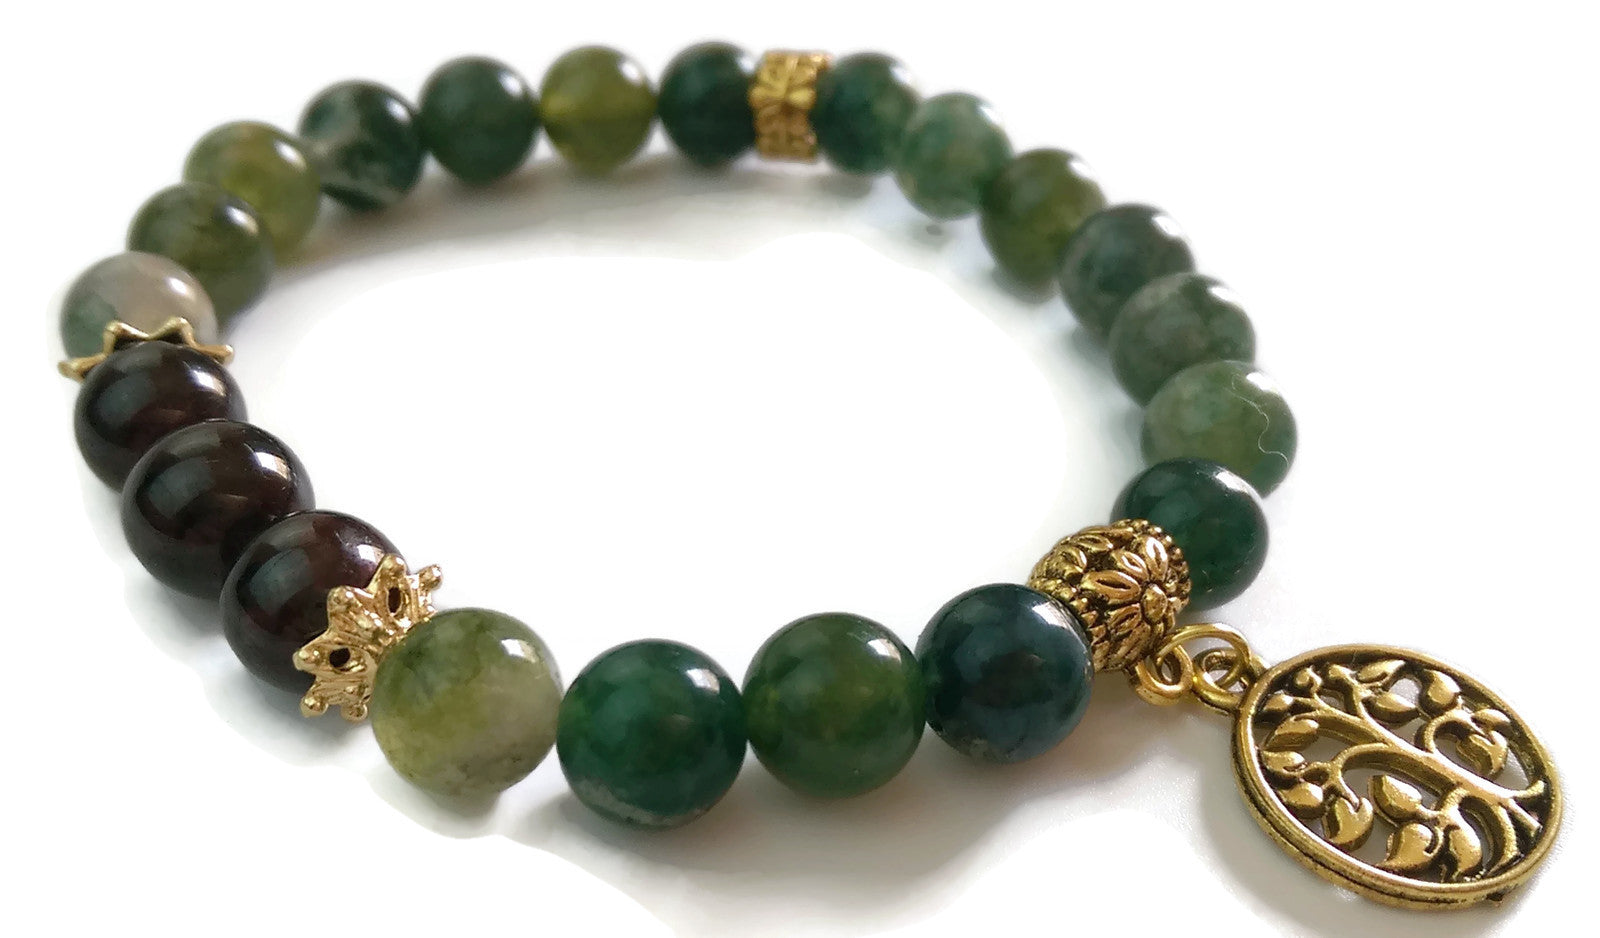 8mm Green Jade and Garnet with Gold Tree of Life Charm Yoga Wrist Mala Bracelet